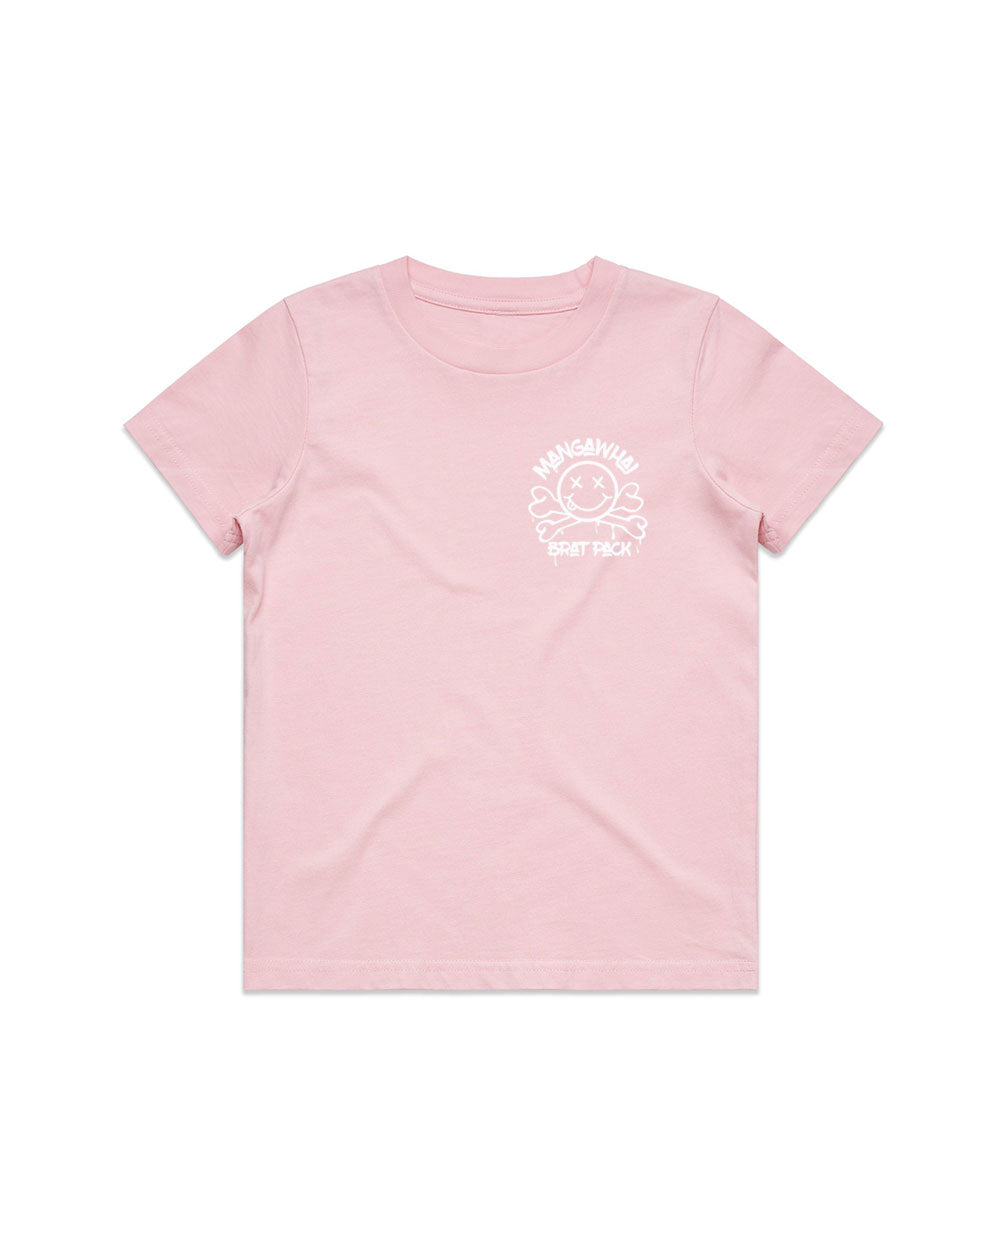 Kids Brat Pack Pink Tee - Threadbox